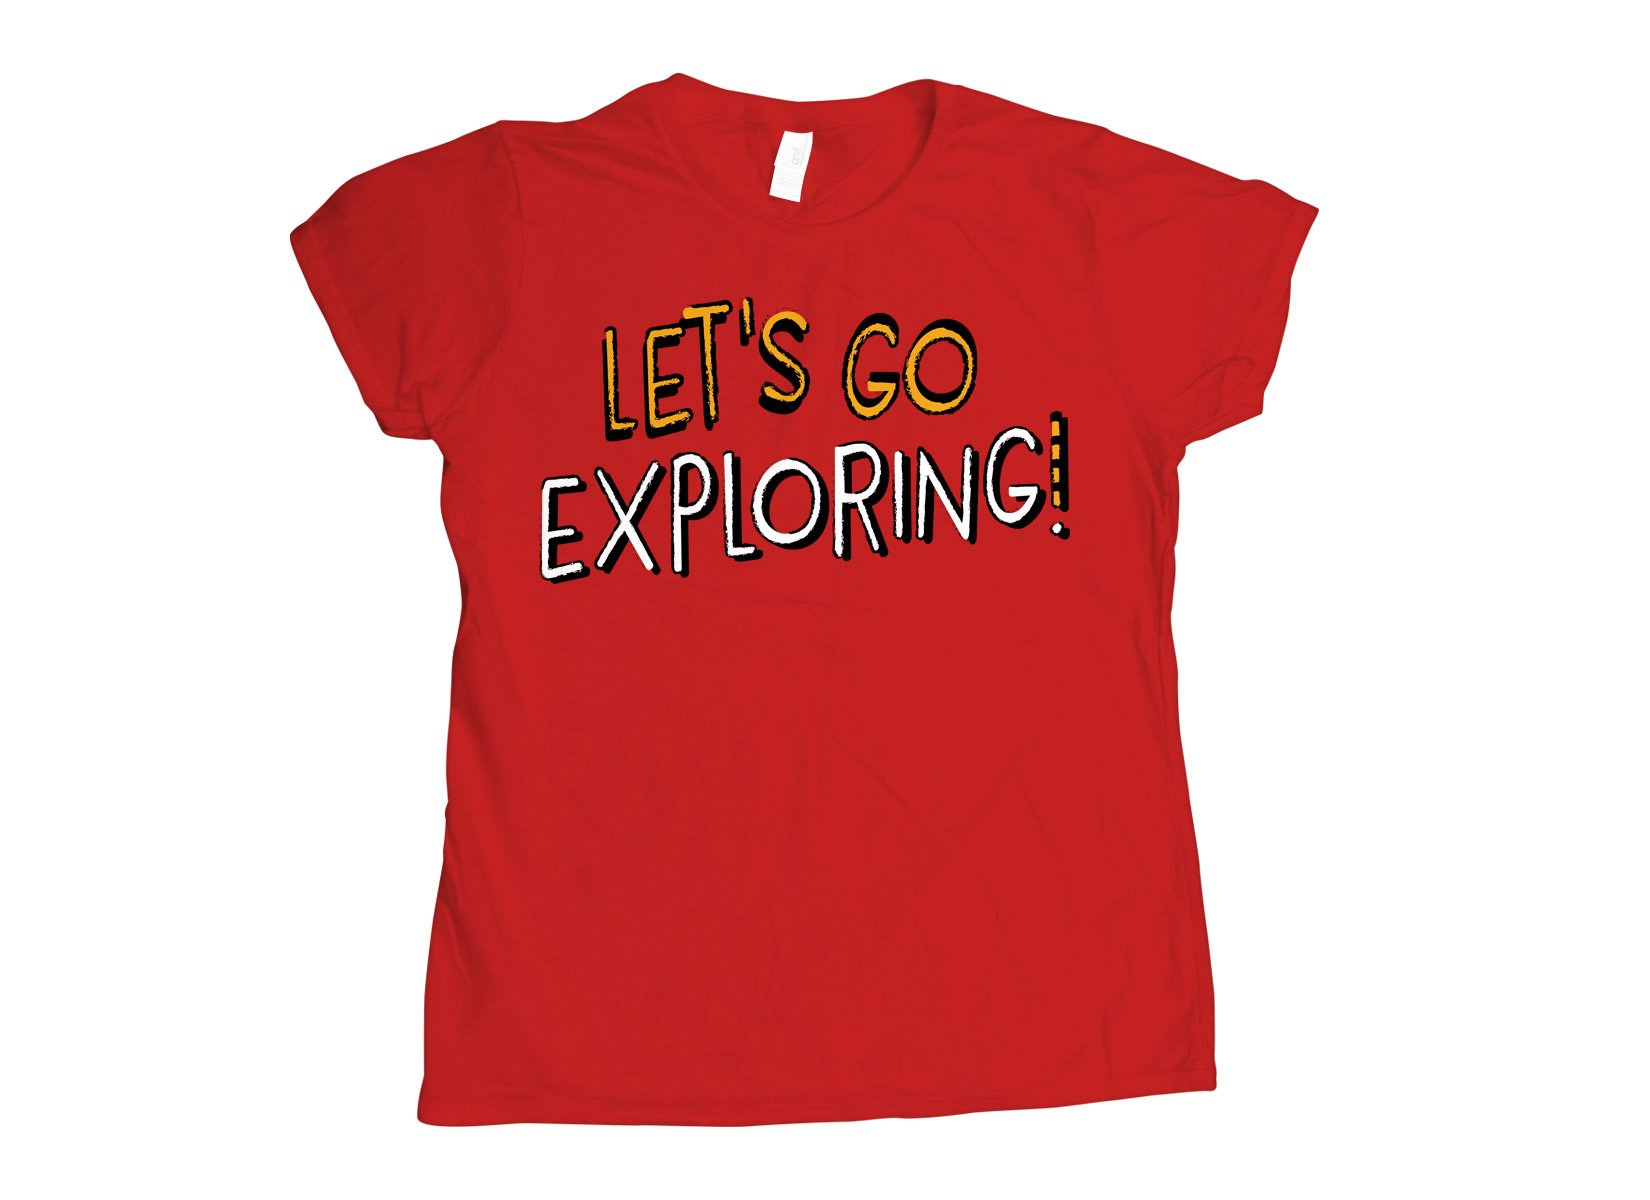 Let's Go Exploring! on Womens T-Shirt